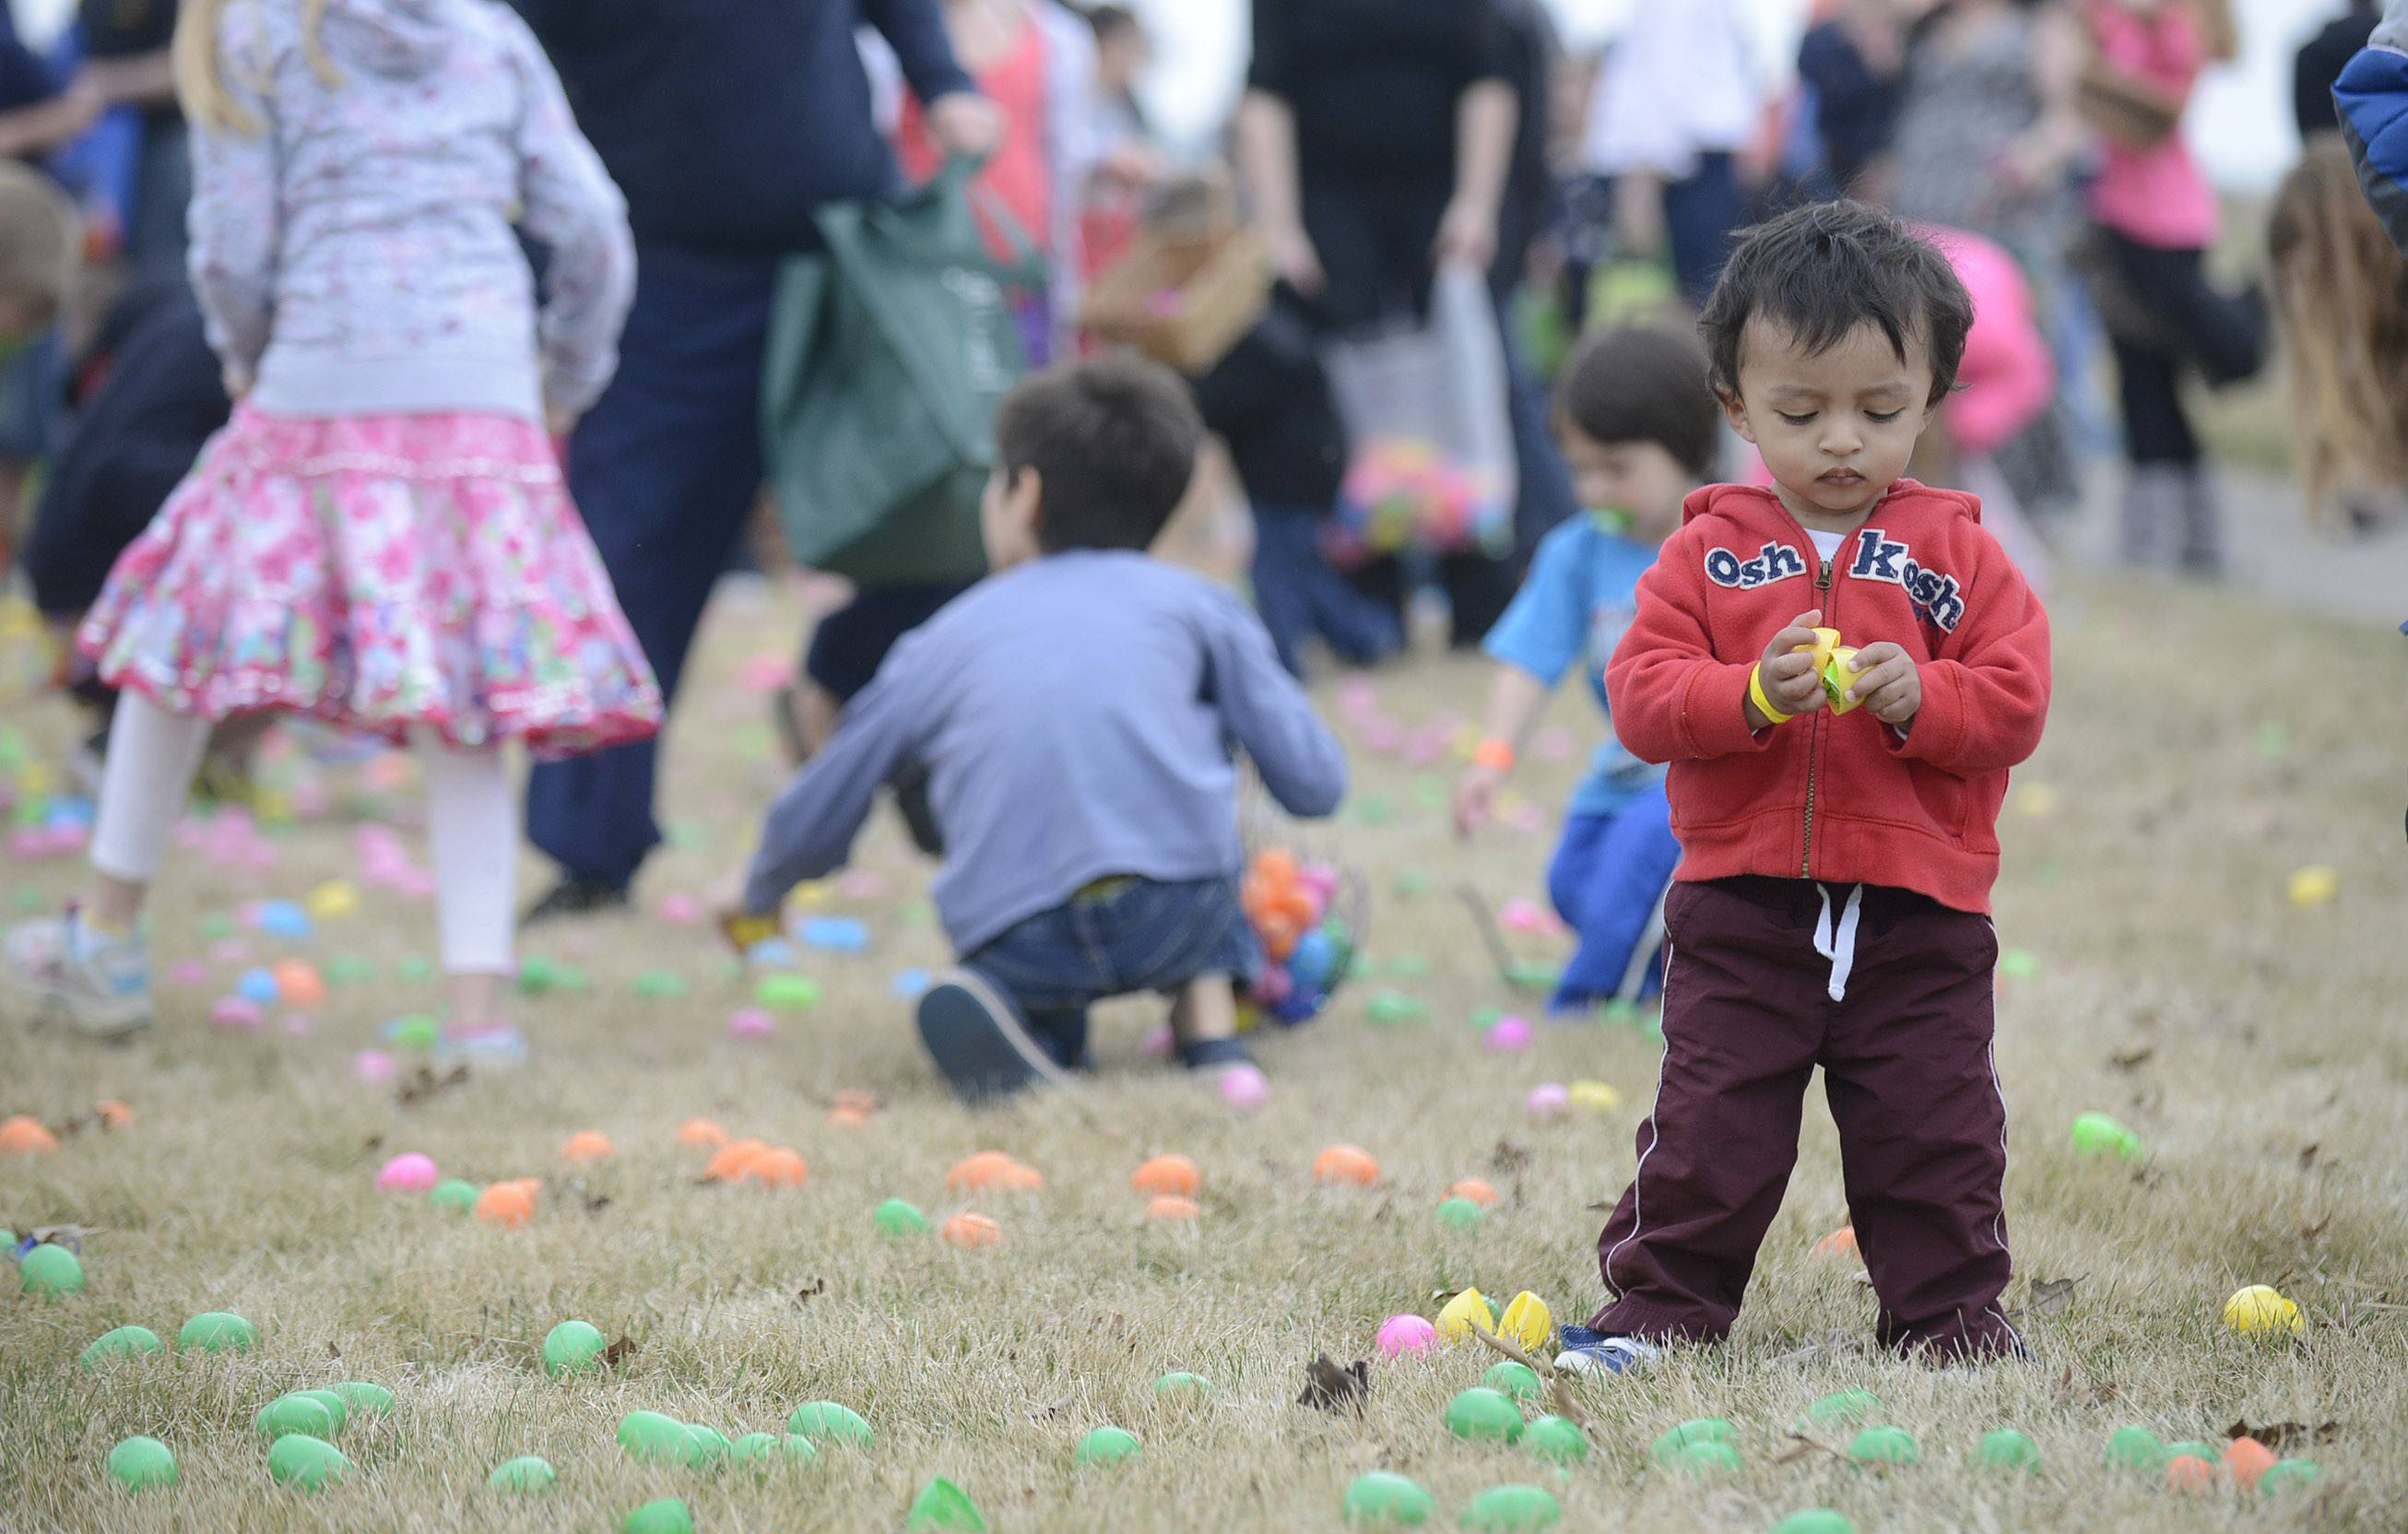 Vincent Blanquel, 1½, of Batavia is unfazed by the ruckus going on around him Saturday during the Easter egg hunt at Faith Baptist Mill Creek Creek Church in Geneva.